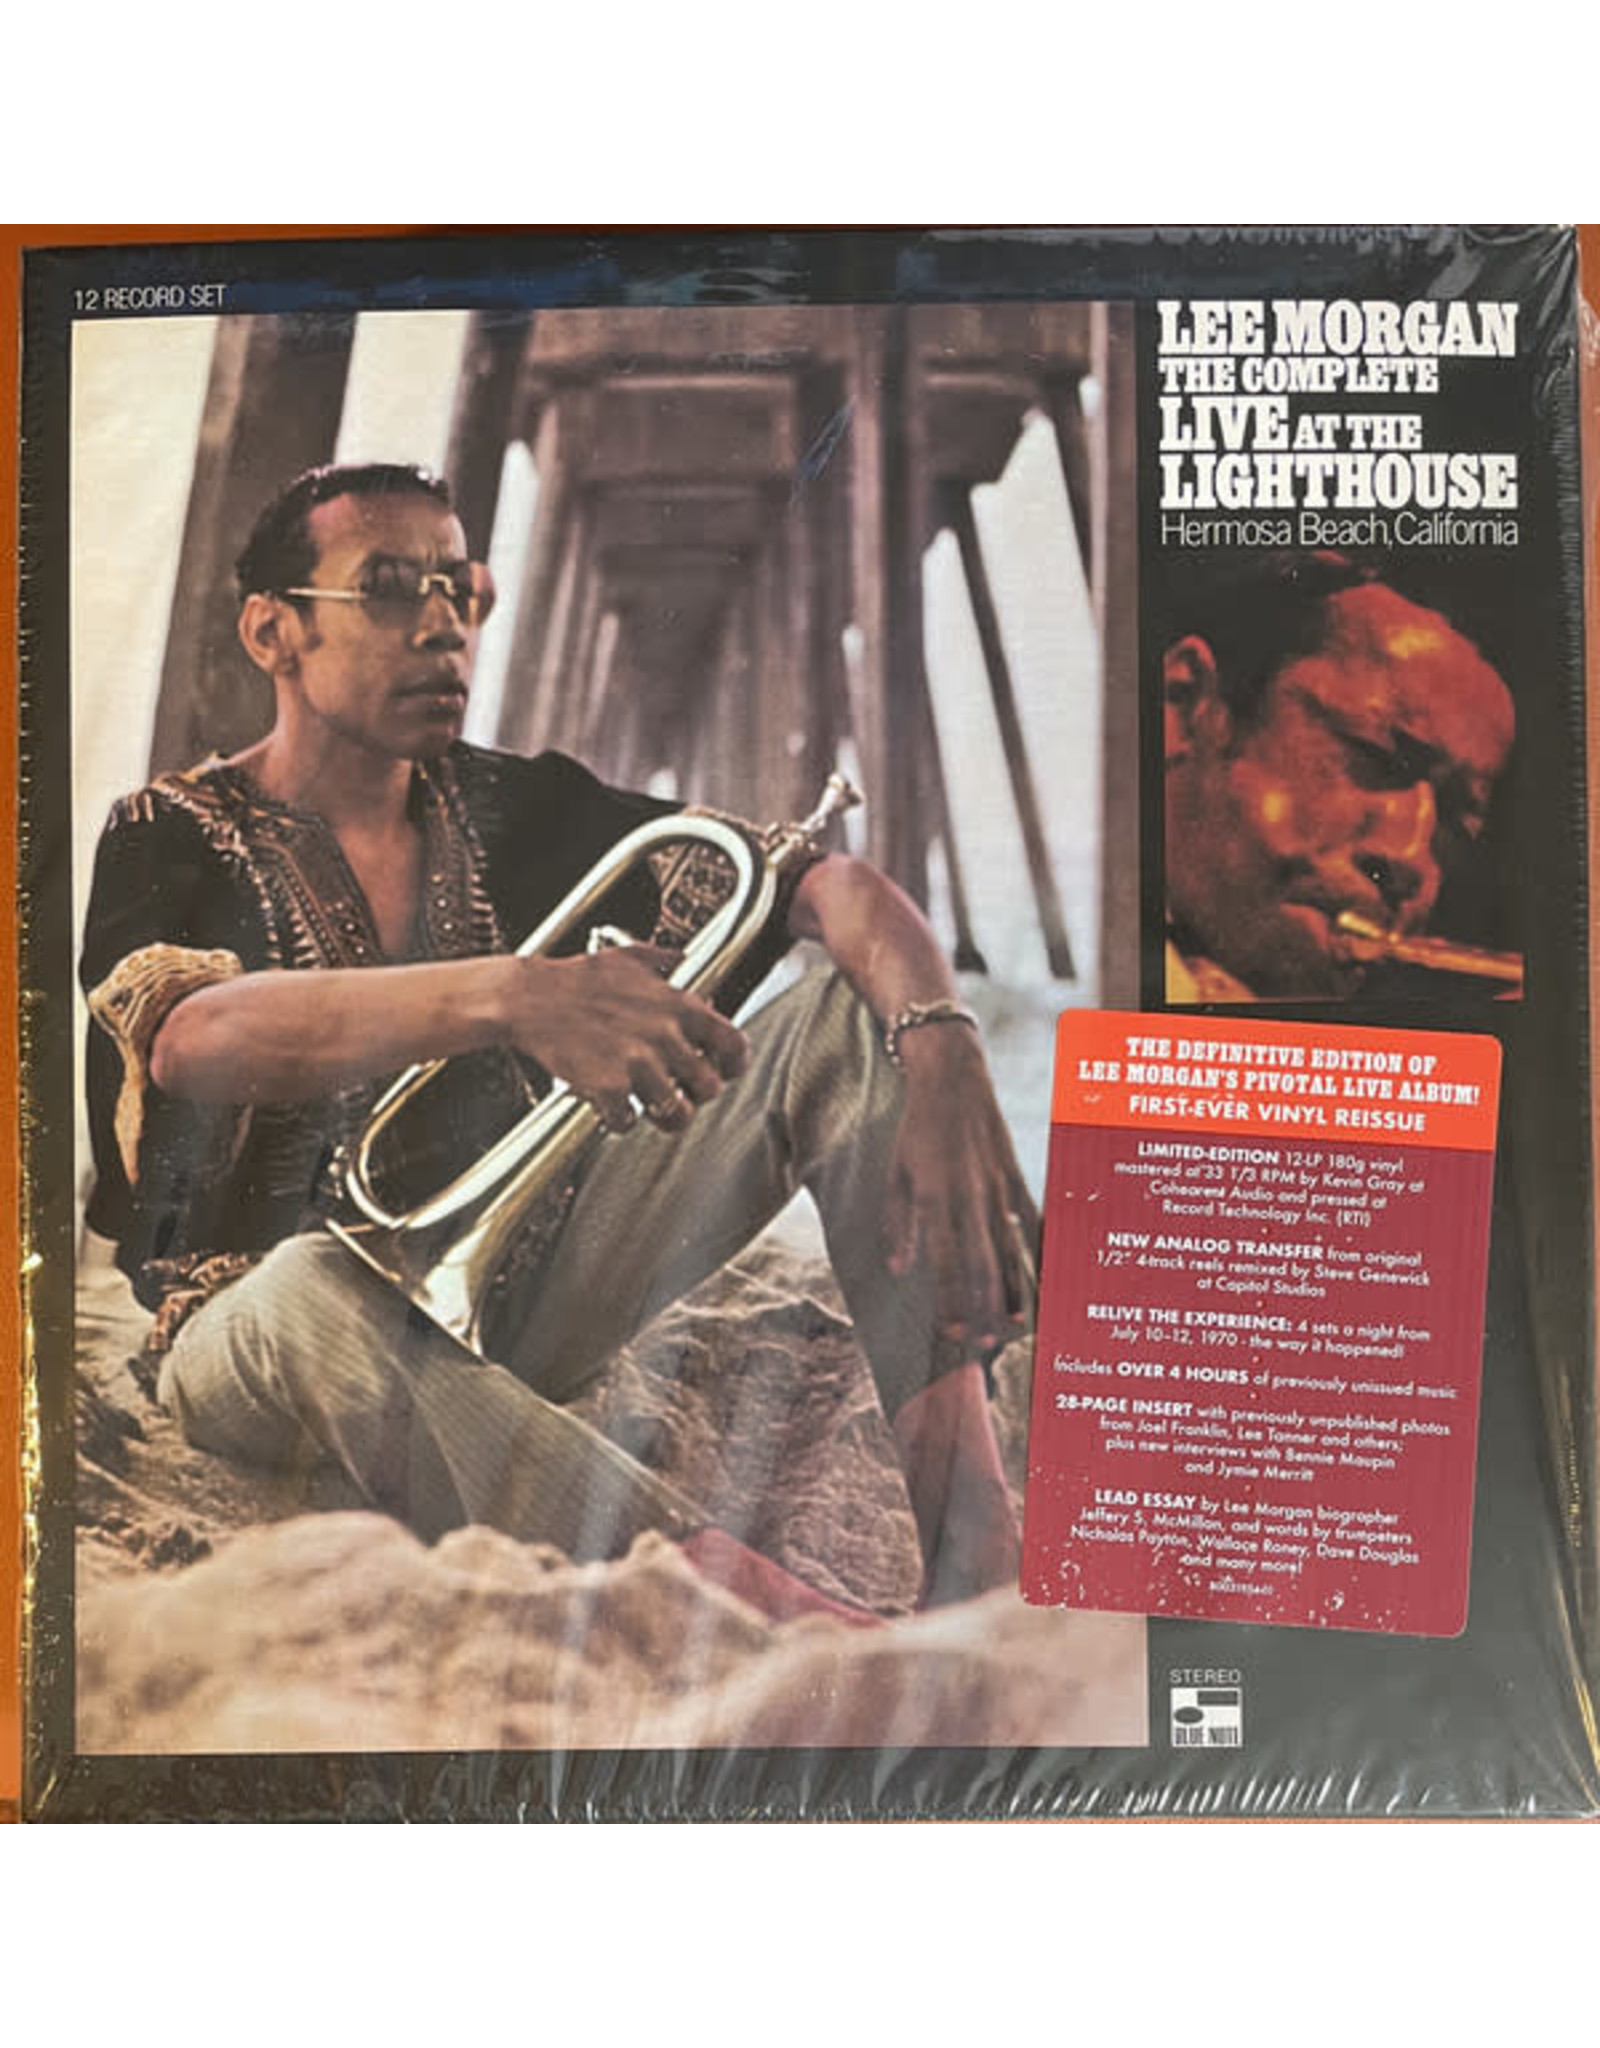 Morgan, Lee - The Complete Live At The Lighthouse 12 LP Box Set